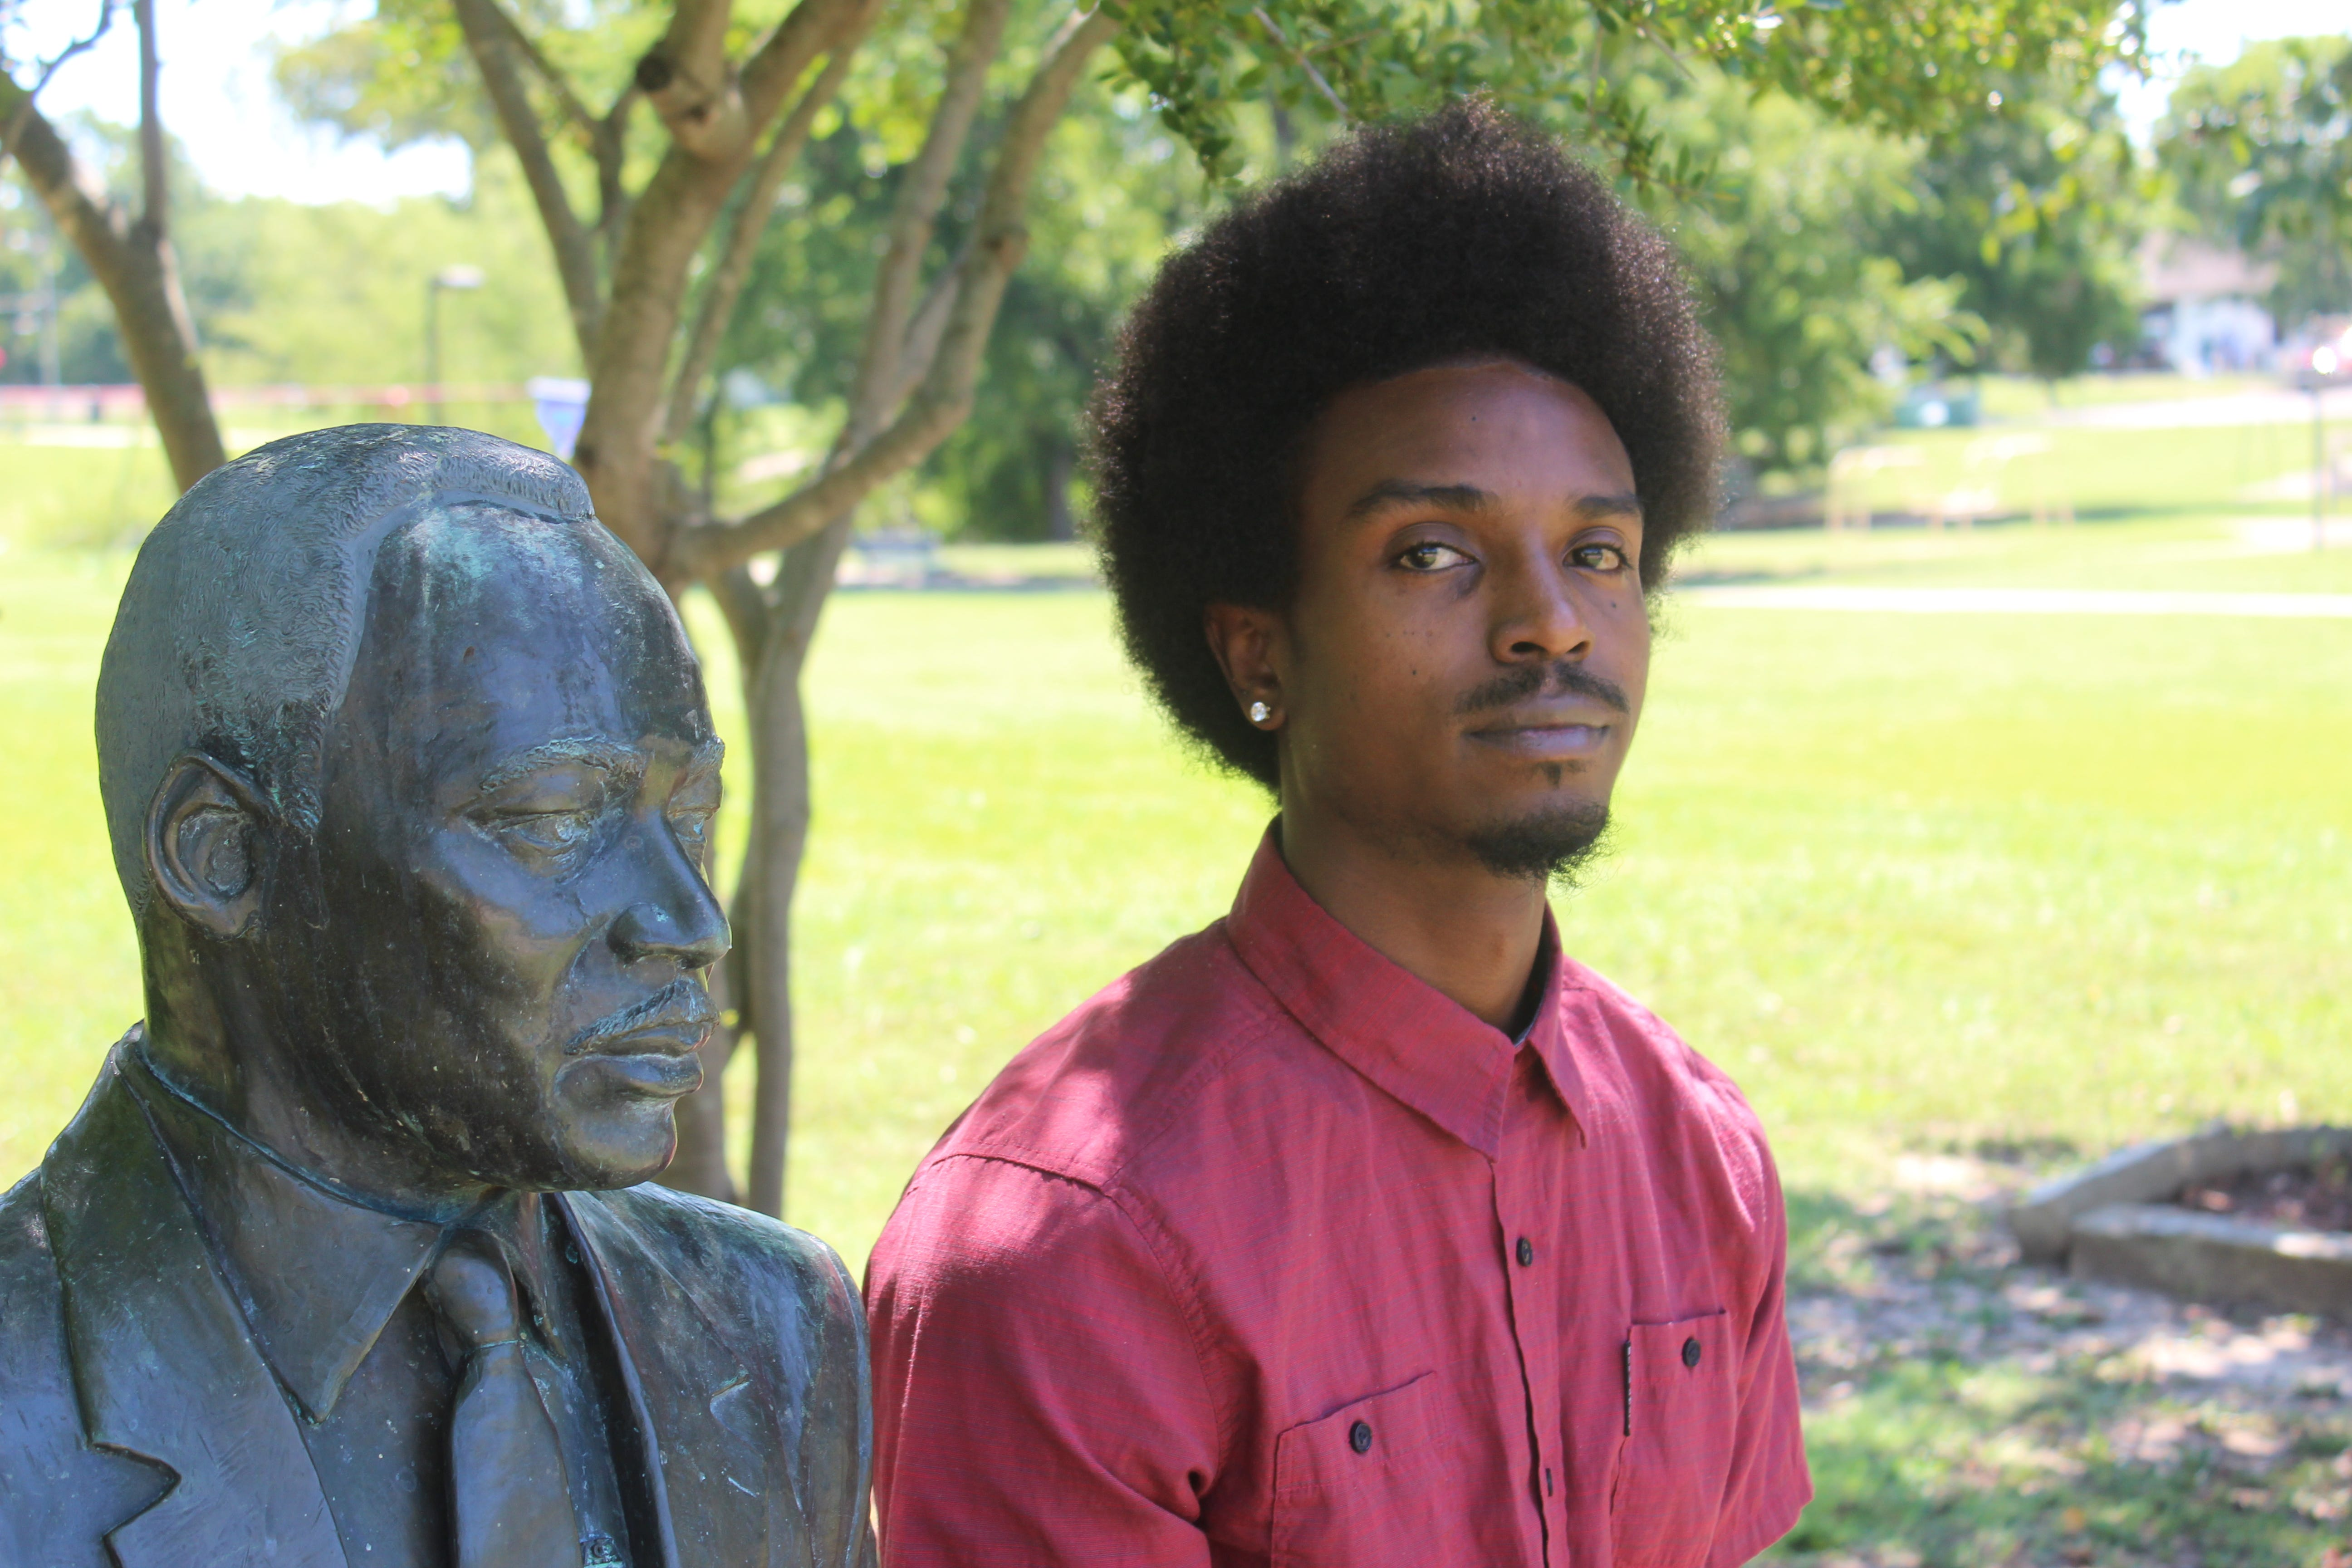 Joshua Shaw has led peaceful protest in Sherman, Texas.